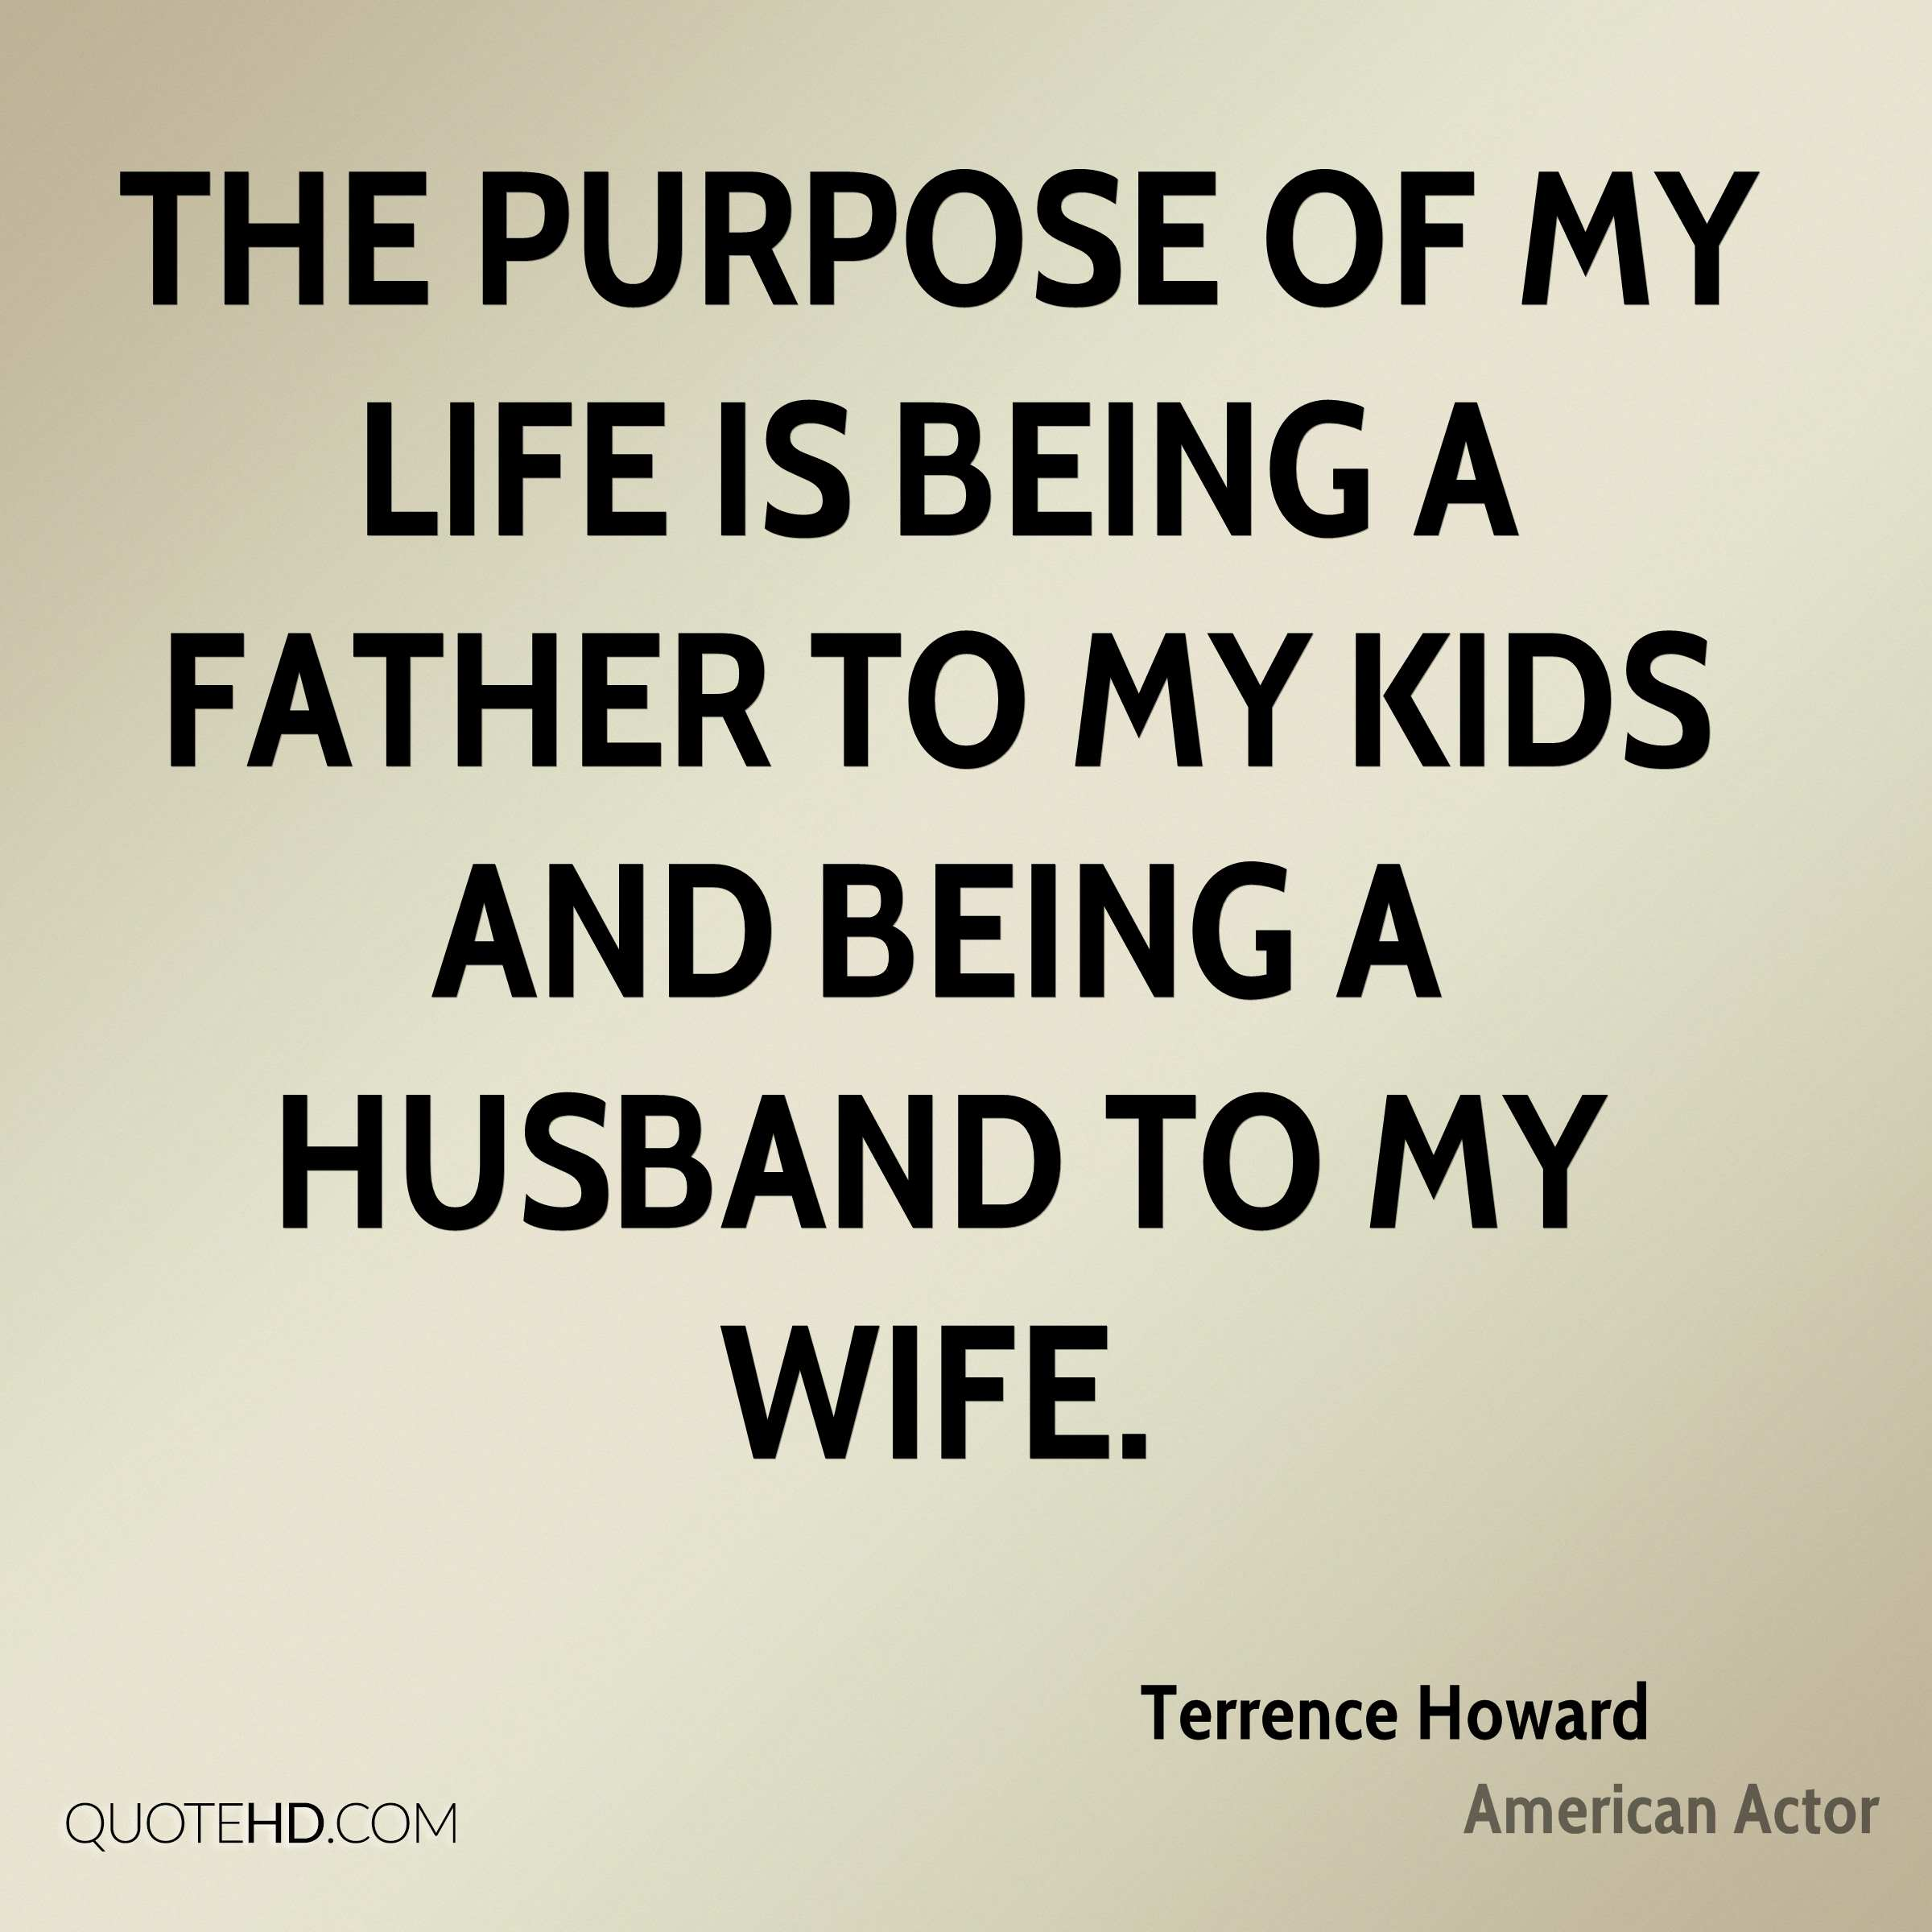 Quotes For Kids About Life Terrence Howard Wife Quotes  Quotehd